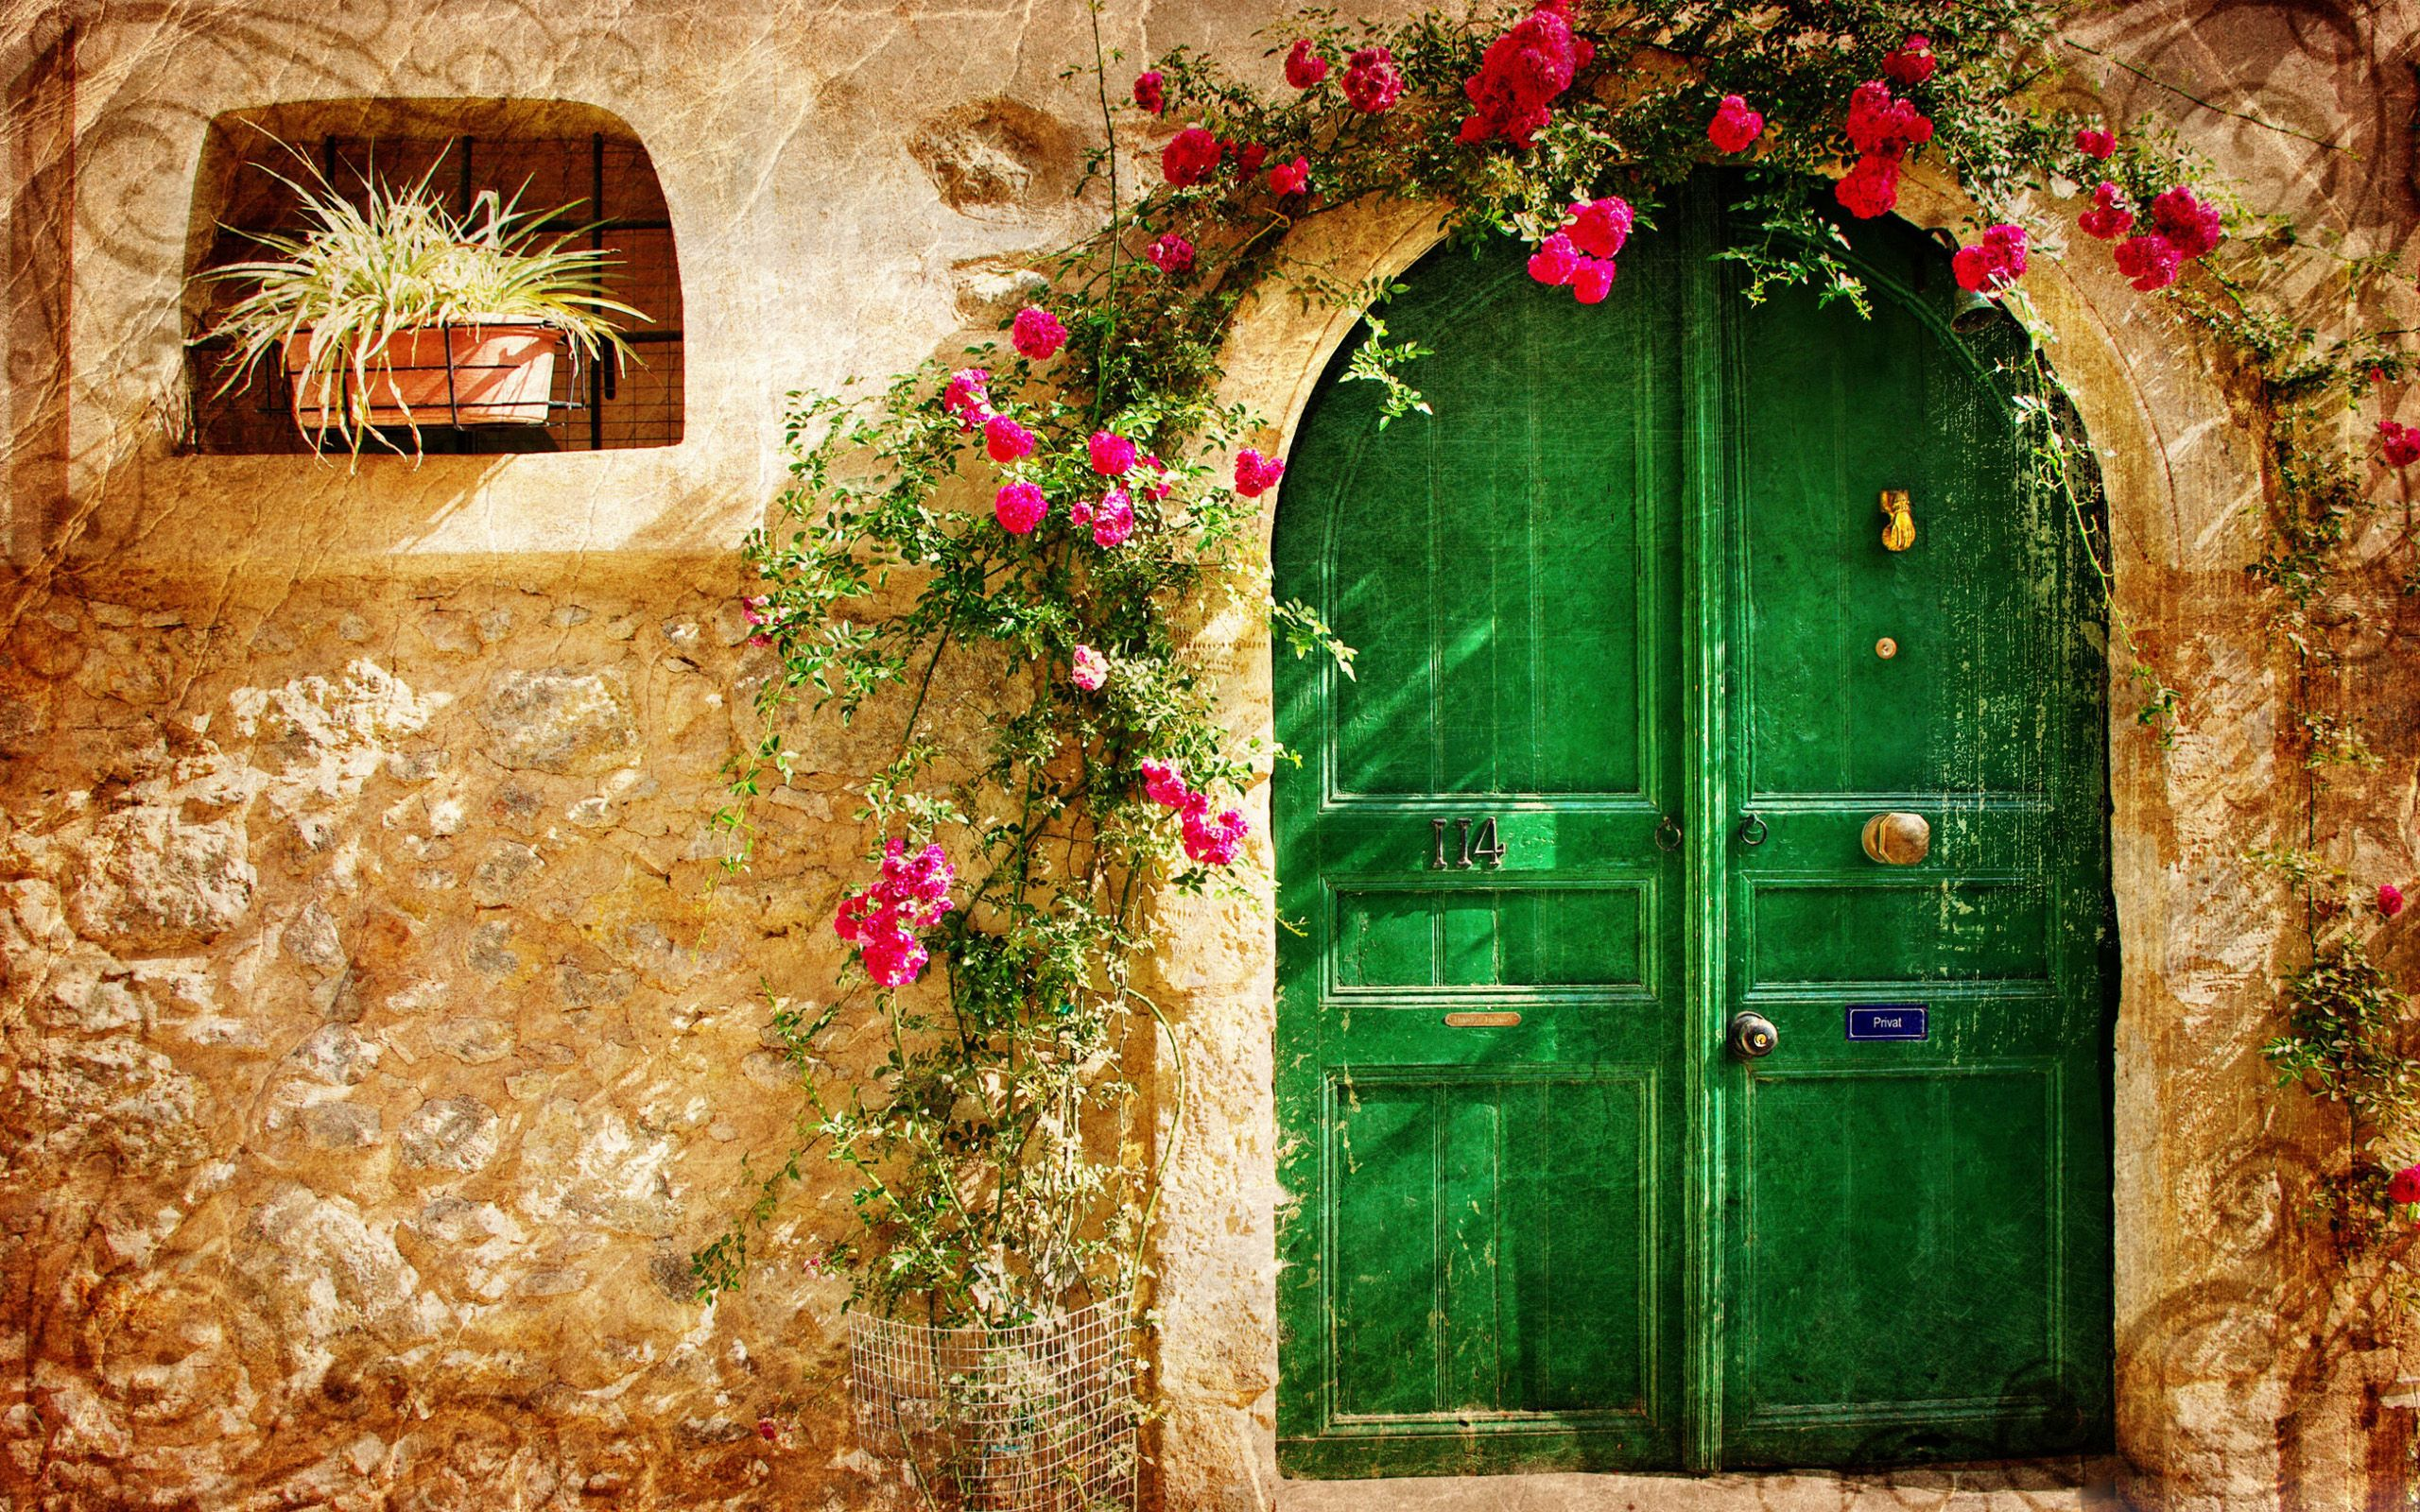 Door Wallpapers 5 Jpg Nature Wallpaper Cool Wallpapers Celebrity Photos Desktop Wallpaper Famous Celebrities Boll Beautiful Doors Green Door Door Murals